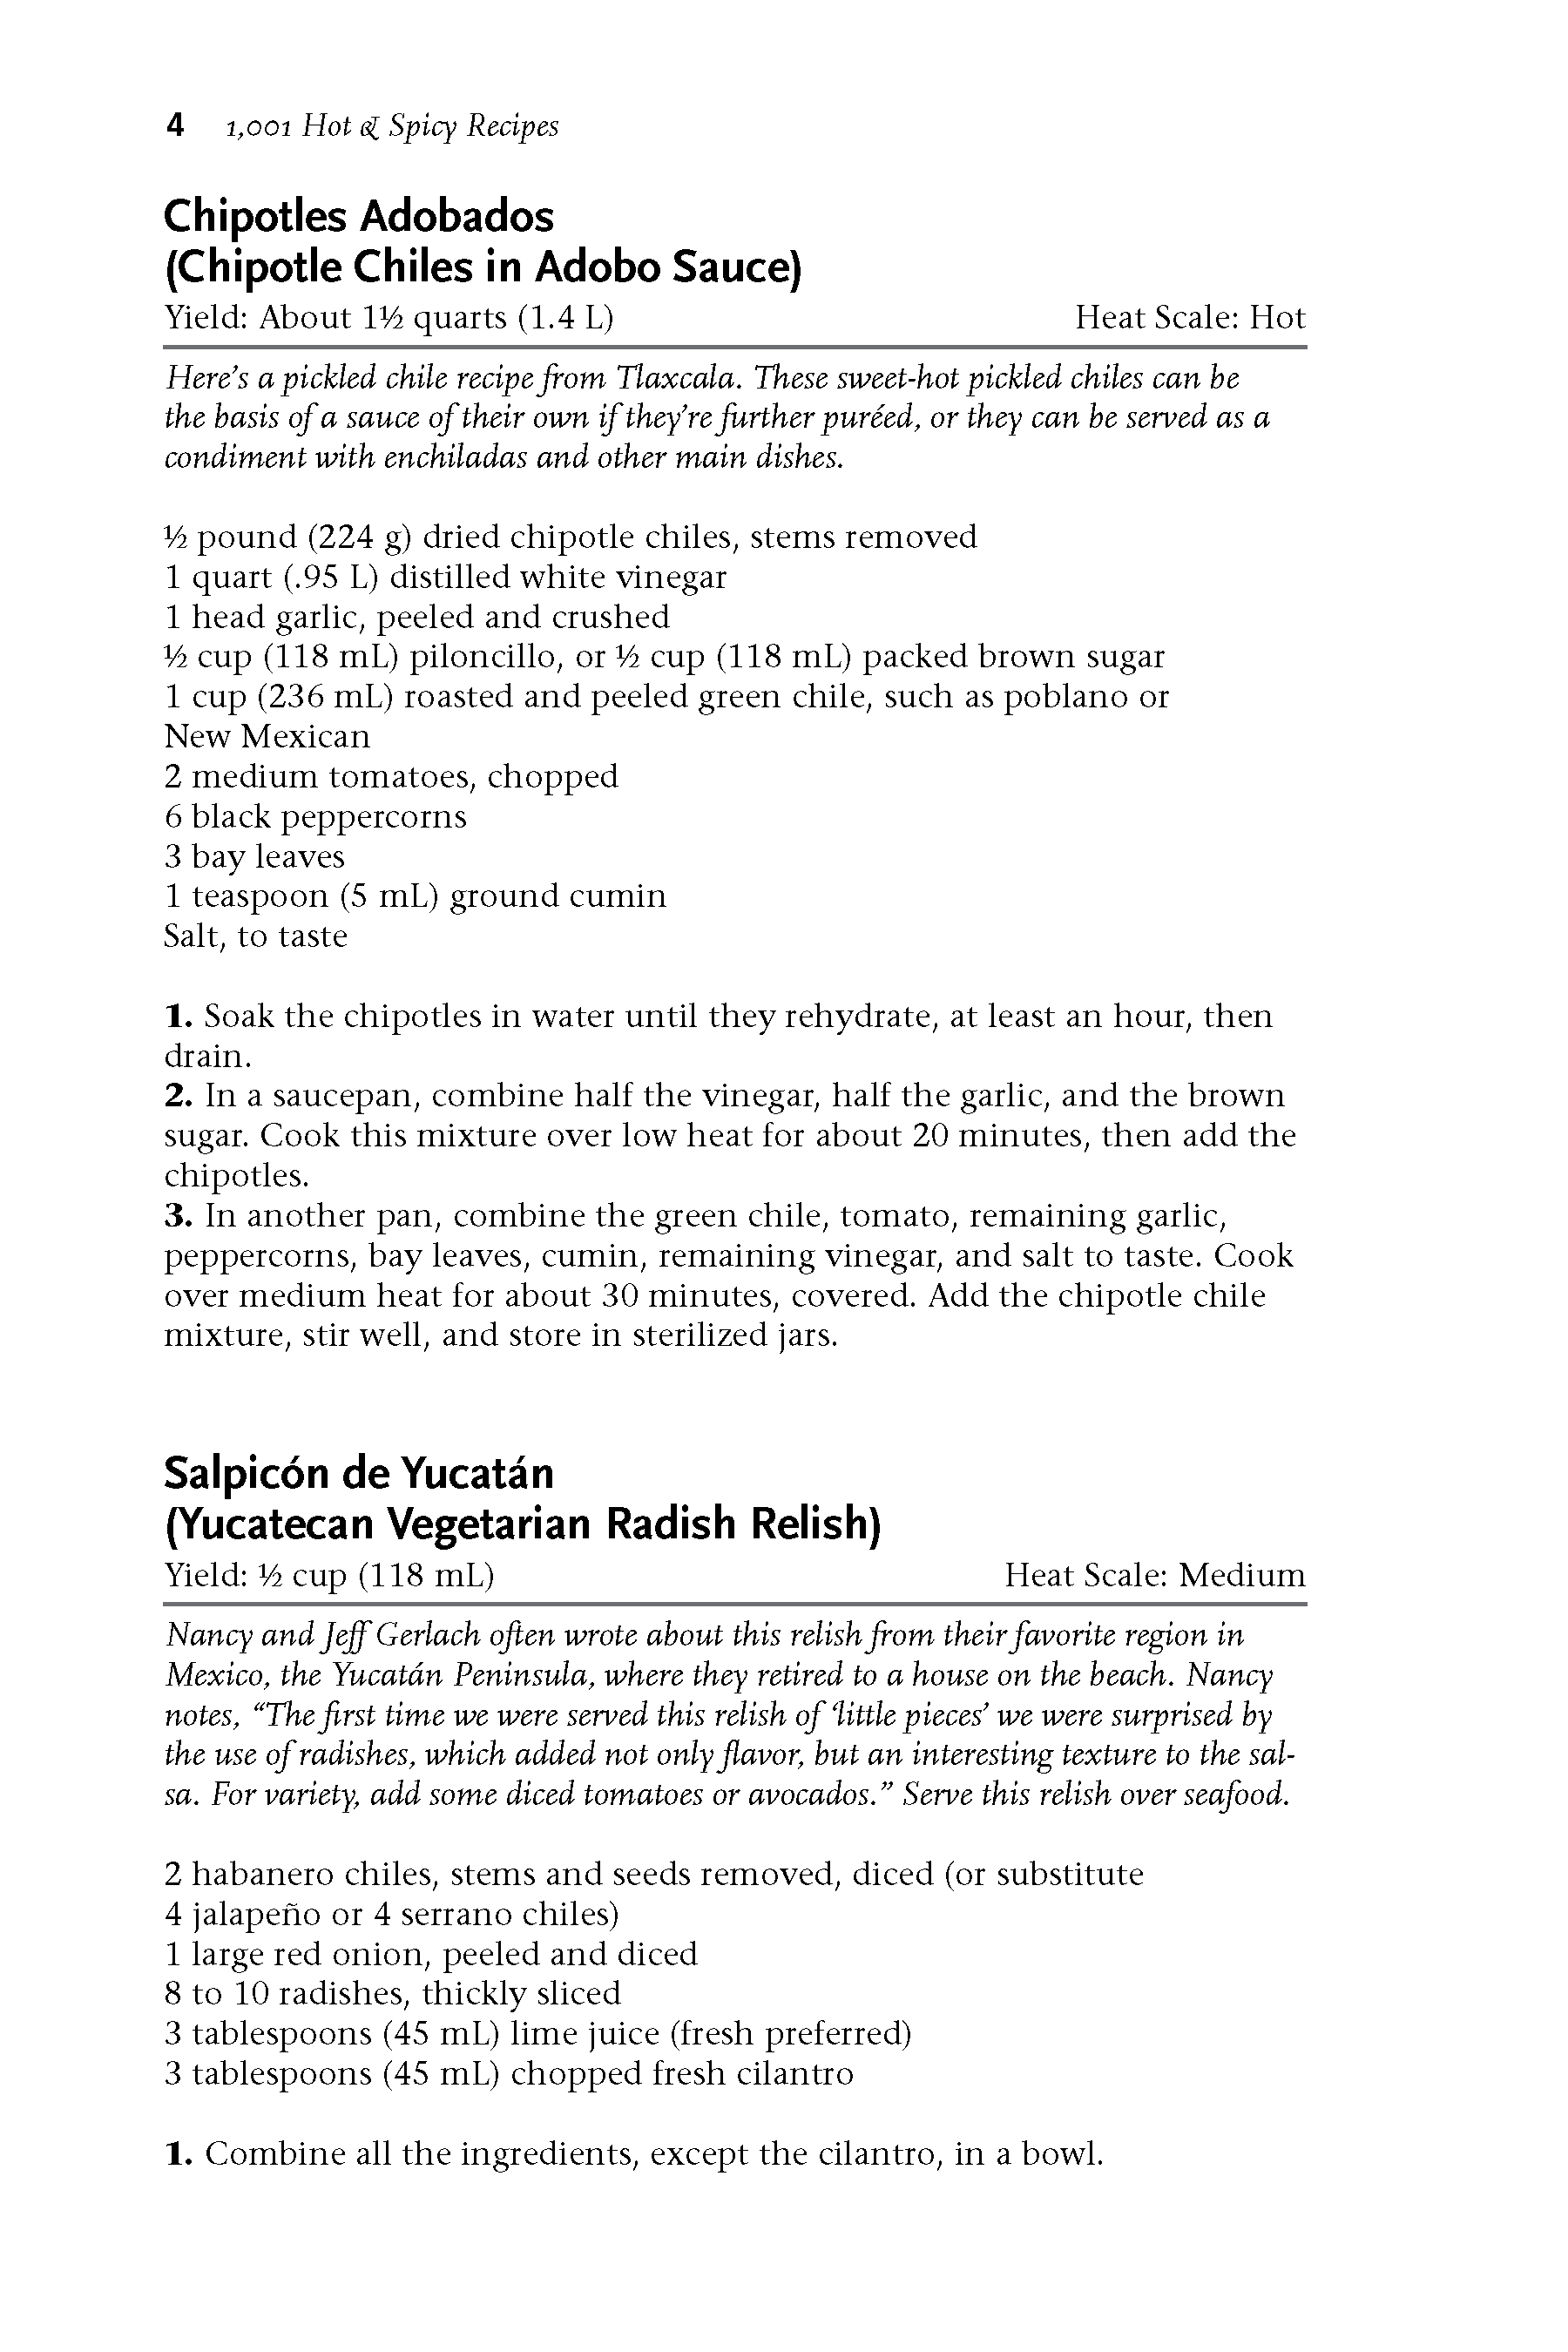 1,001 Best Hot and Spicy Recipes_Page_06.png